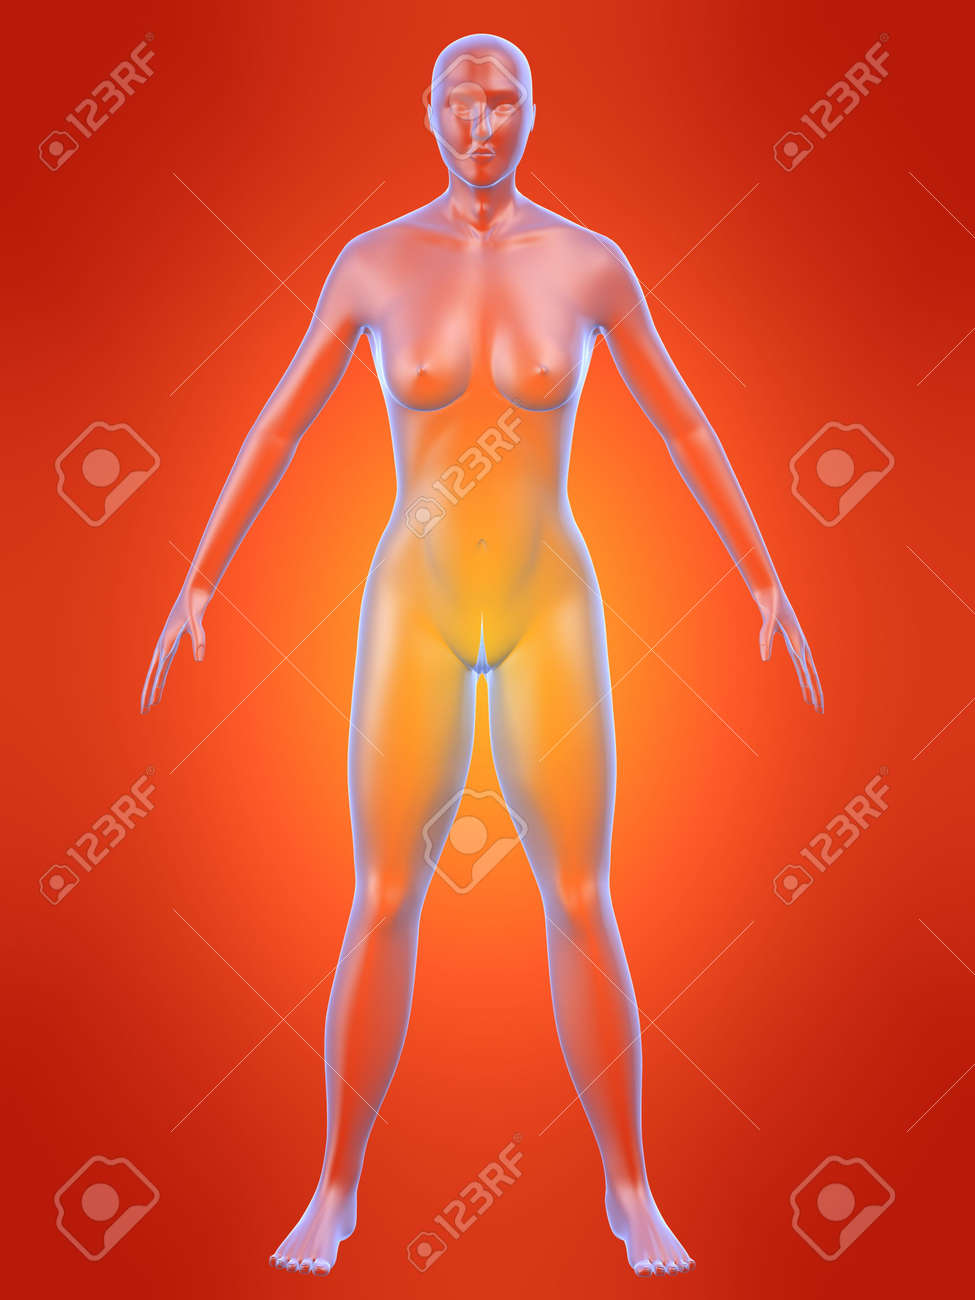 female anatomy Stock Photo - 546705